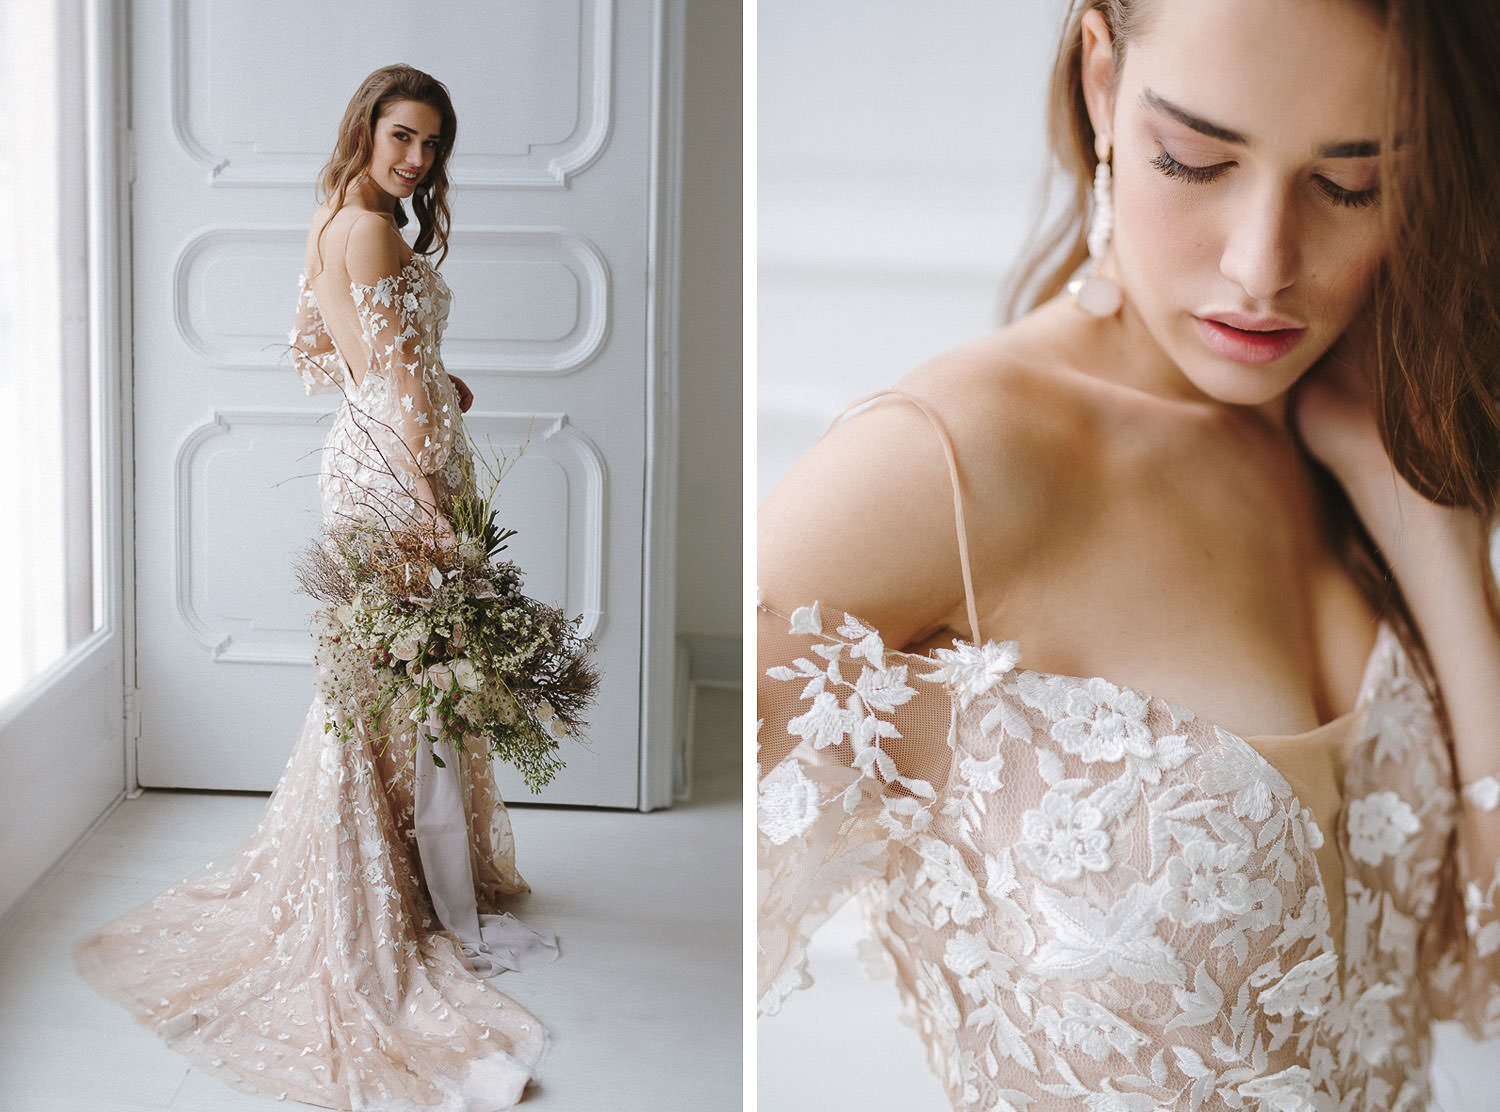 Stunning bridal portraits with Tara Lauren dress - 2018 collection | Photo: Camilla Anchisi Italian destination wedding photographer